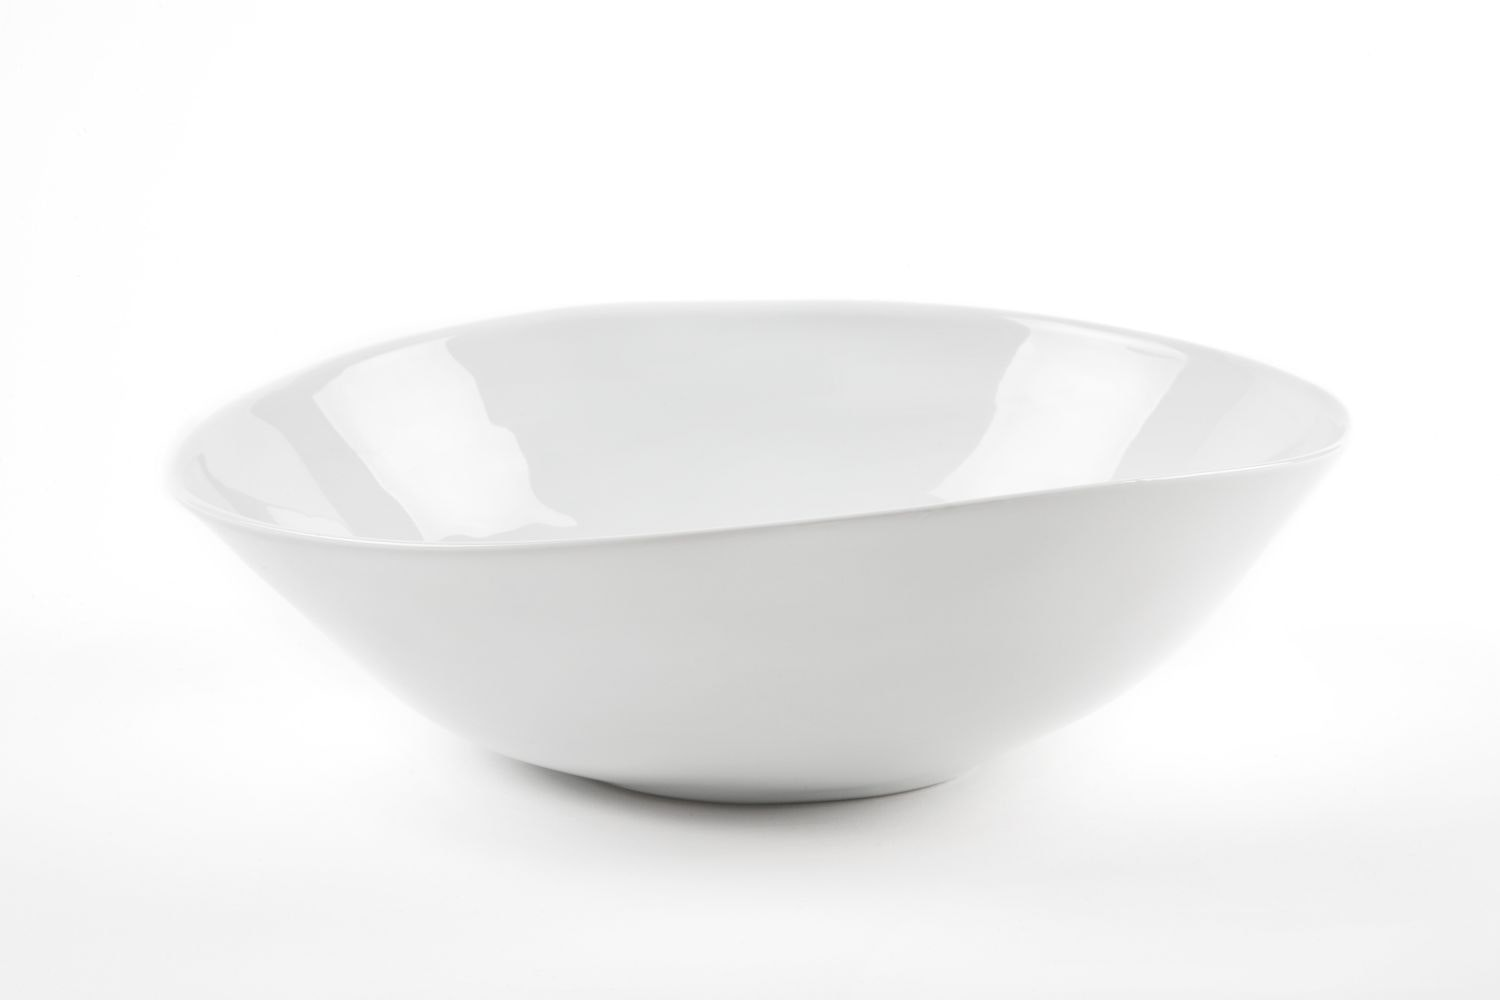 Wide & Low Famished Salad Bowl by Tse & Tse